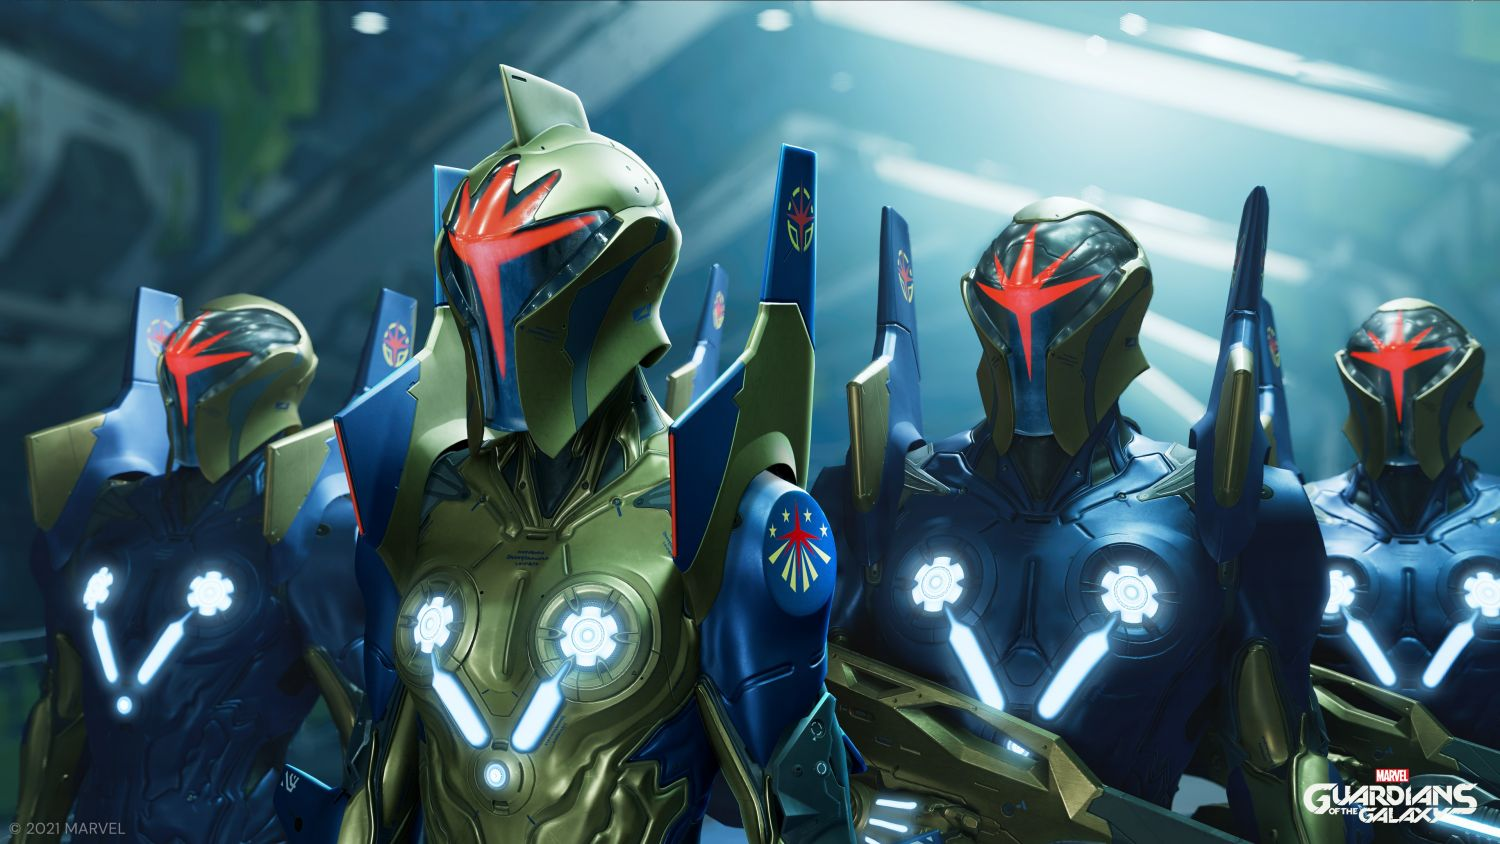 Geek Preview: Marvel's Guardians of the Galaxy - The Nova Corp